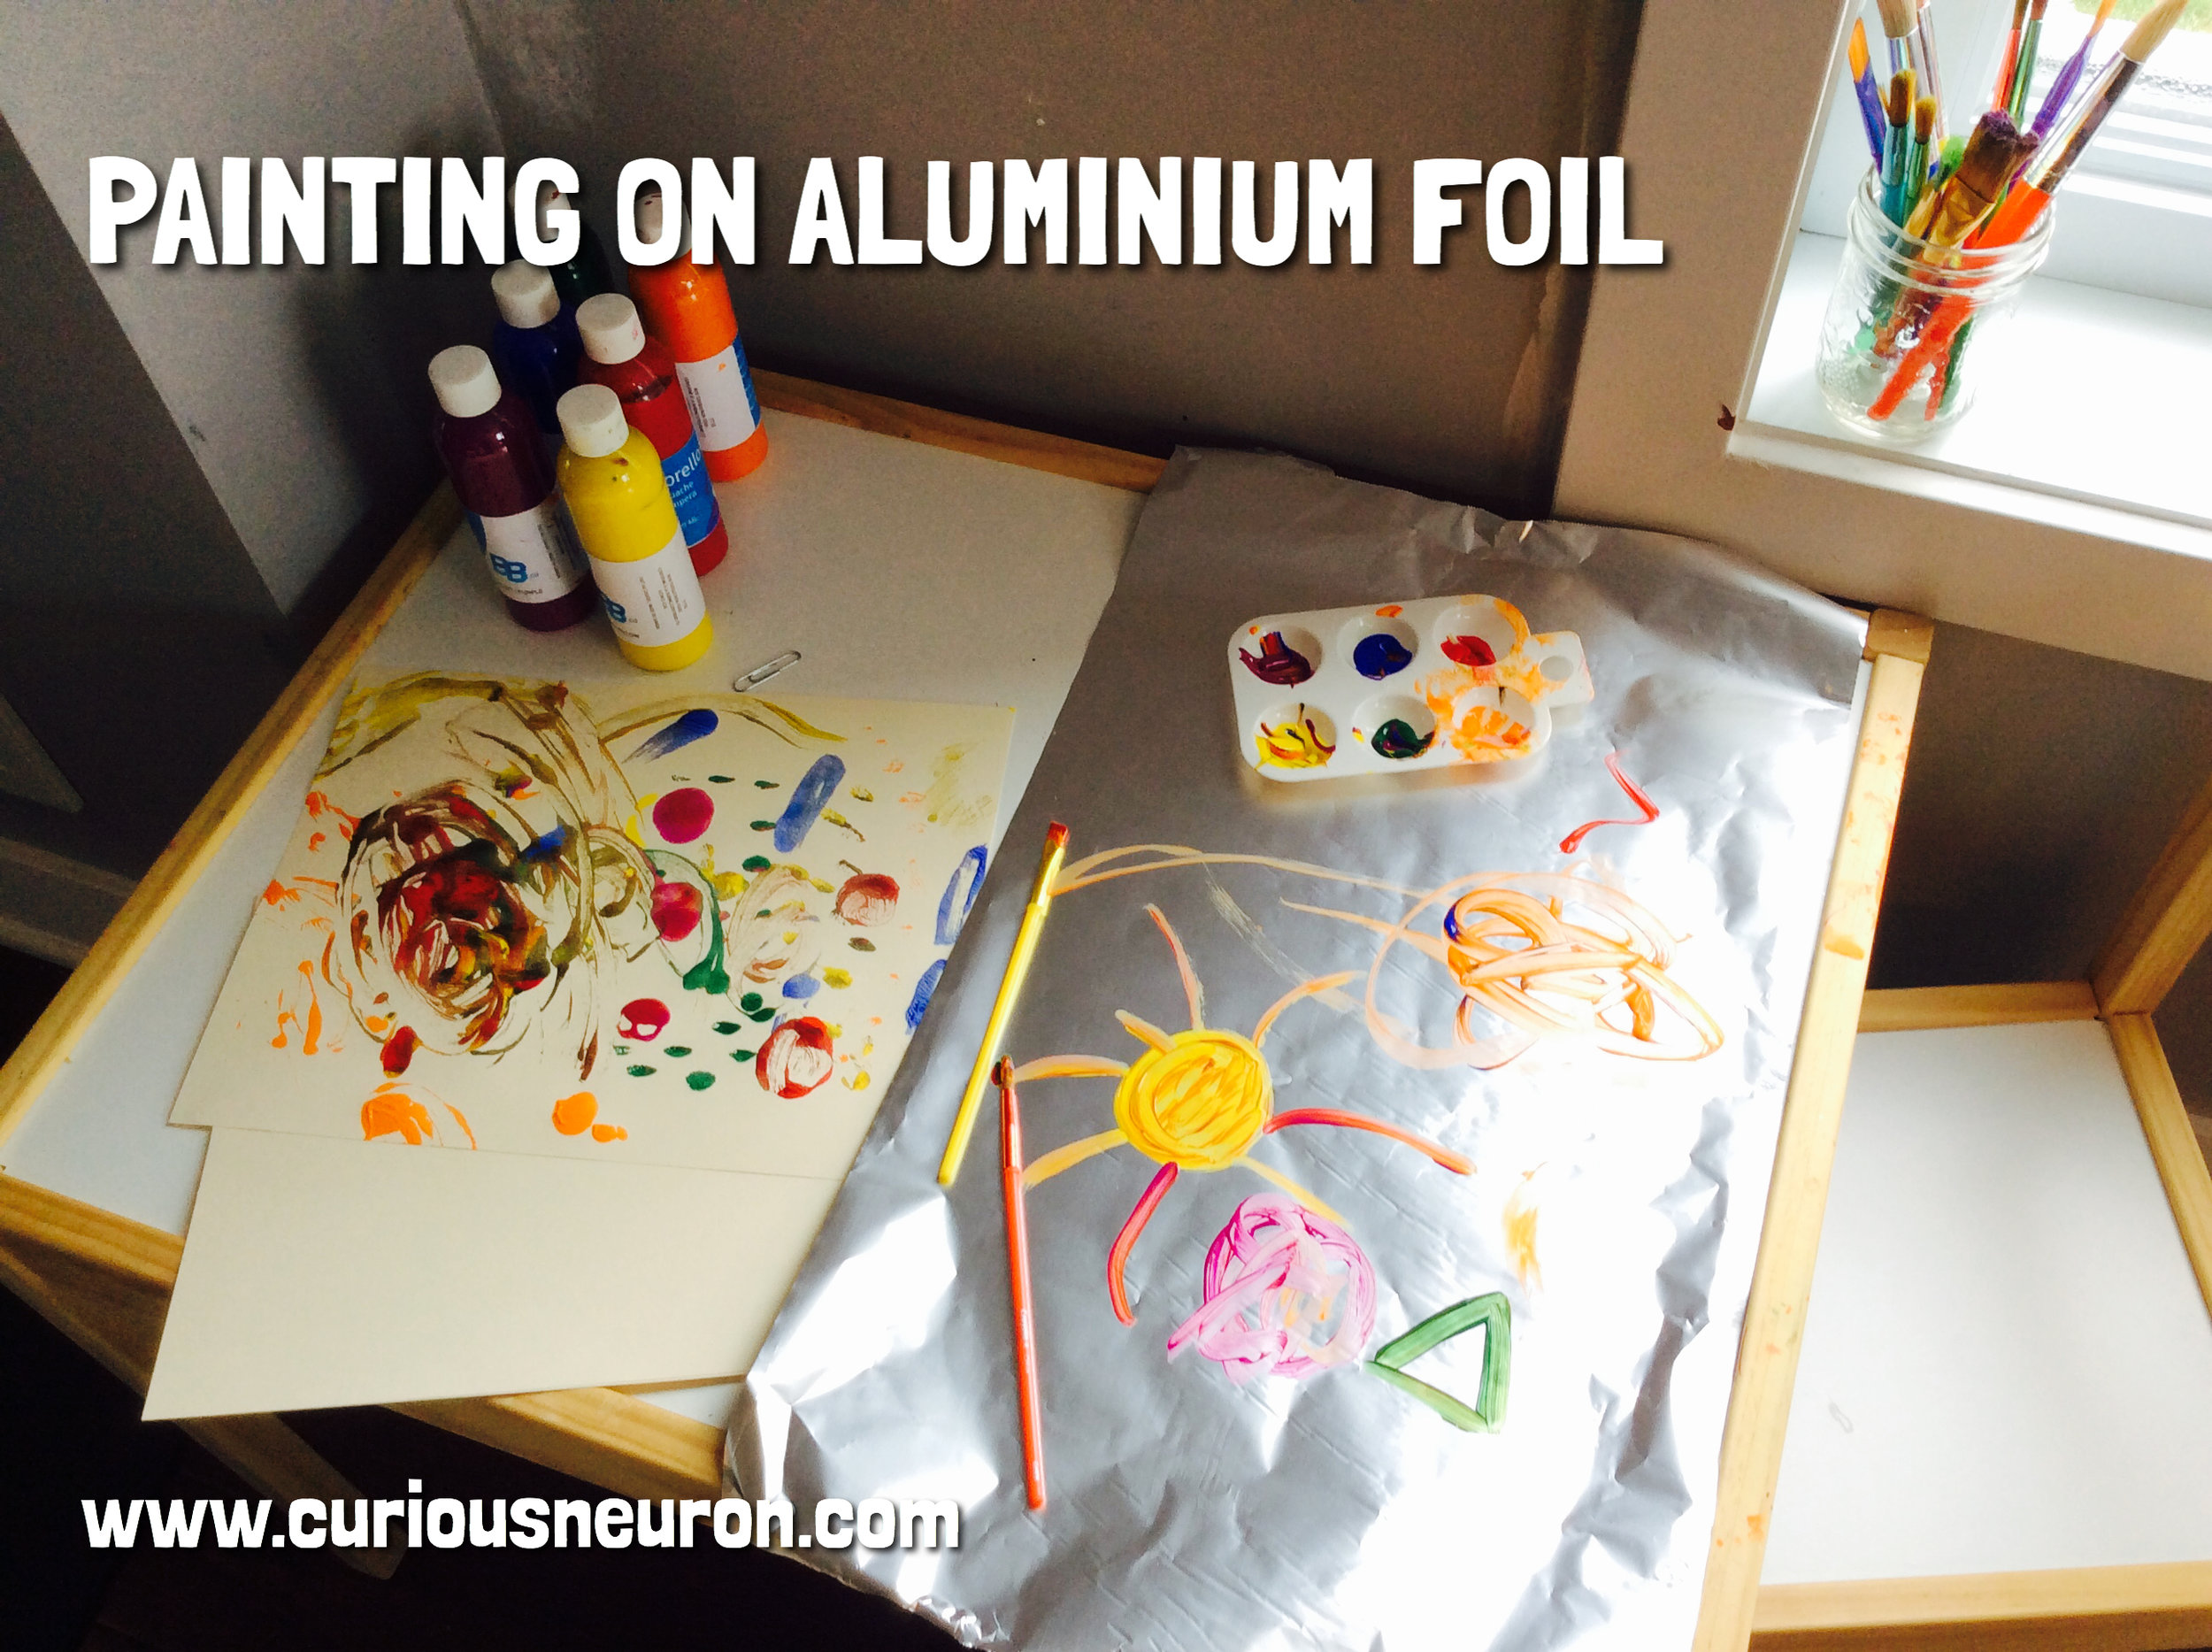 Changing what you use as a canvas is a fun way to keep painting entertaining for children. Painting on aluminium foil is fun for younger children since the paper has a nice shine to it! We used tempera paint for children.